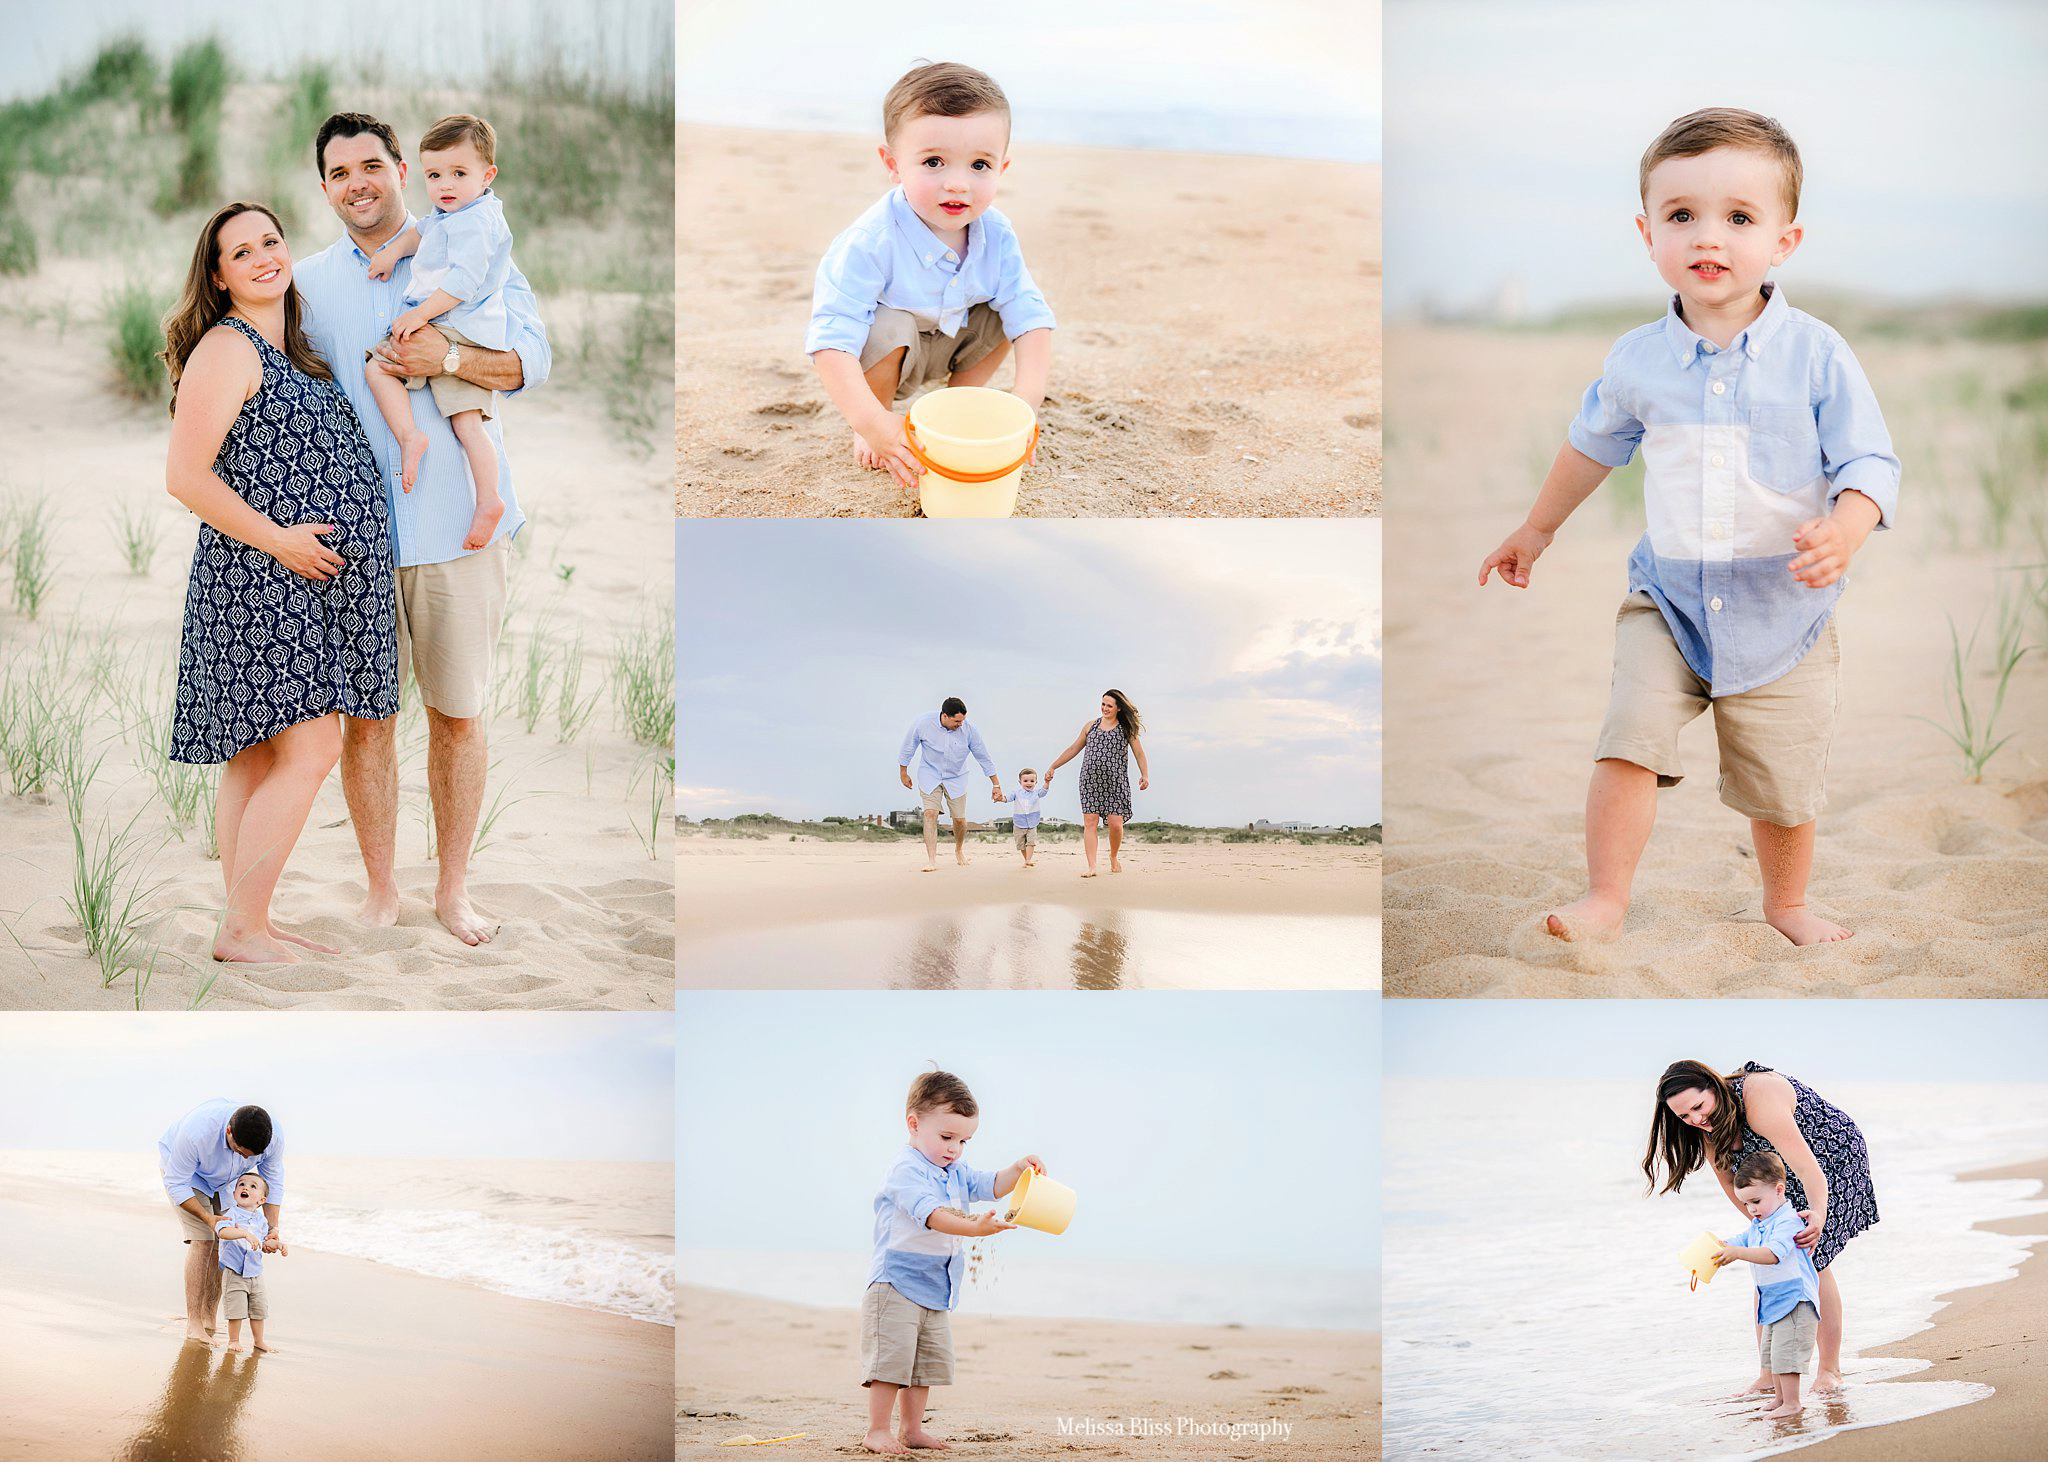 melissa-bliss-photography-virginia-beach-family-mini-session-at-the-beach.jpg